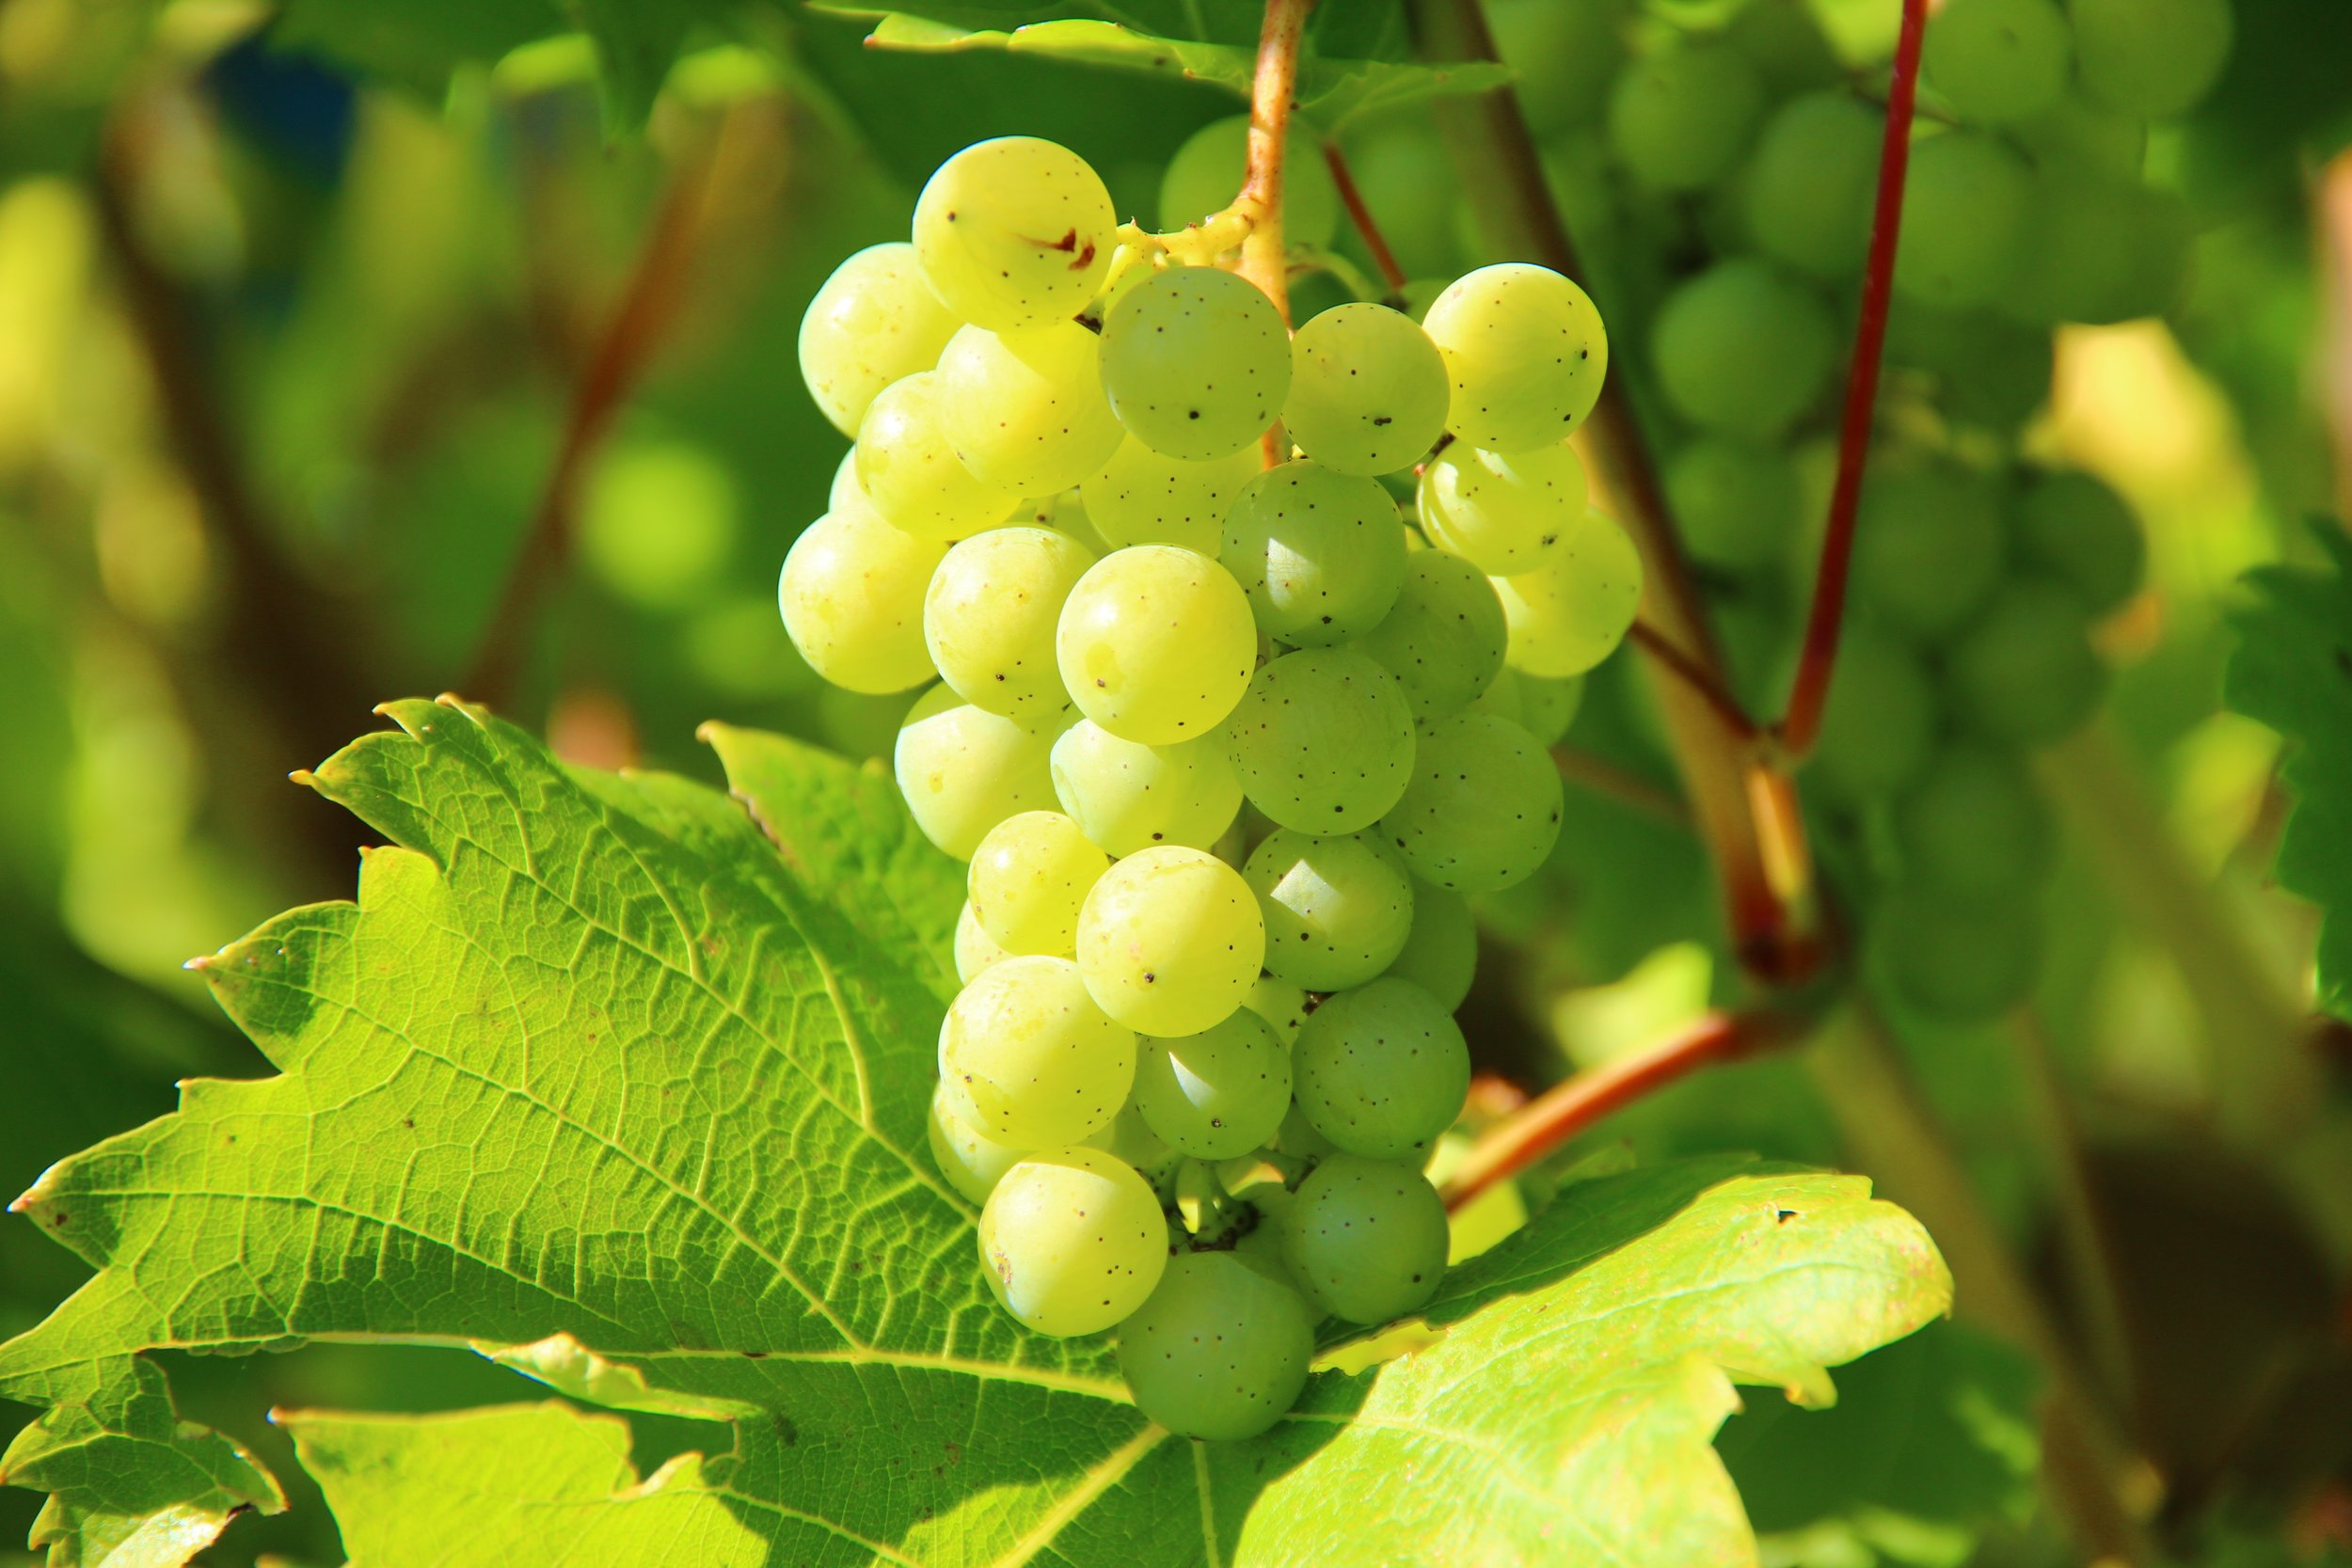 grapes-wine-fruit-vines-60021.jpeg